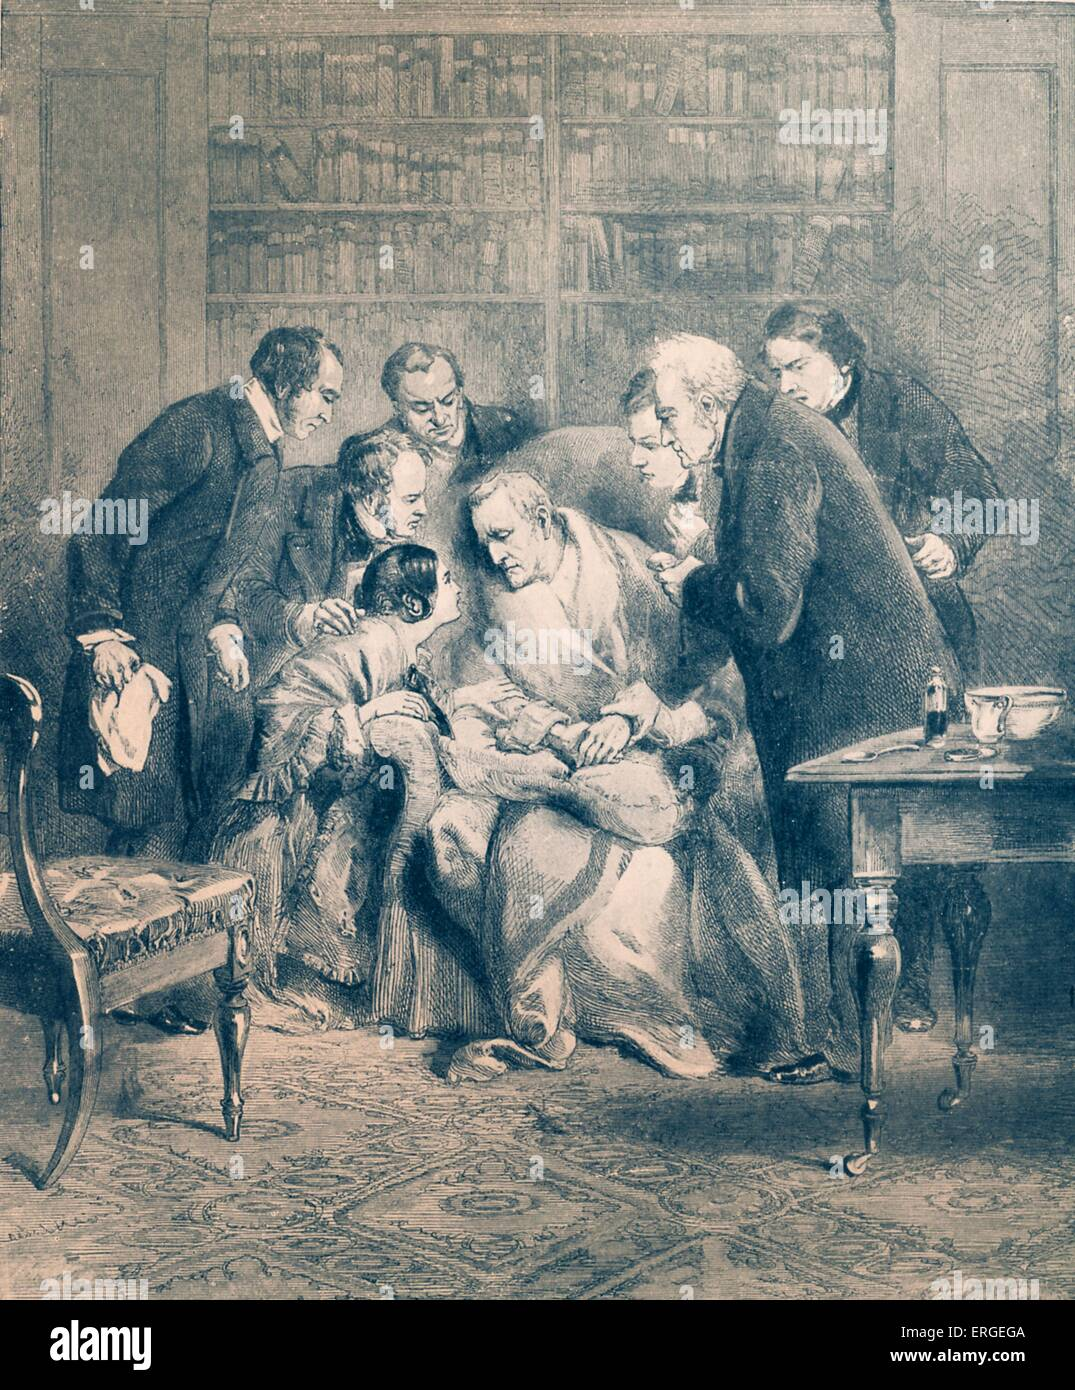 Duke of Wellington 's death - pictured surrounded by friends, including Lord and Lady Charles Wellesley. Field - Stock Image